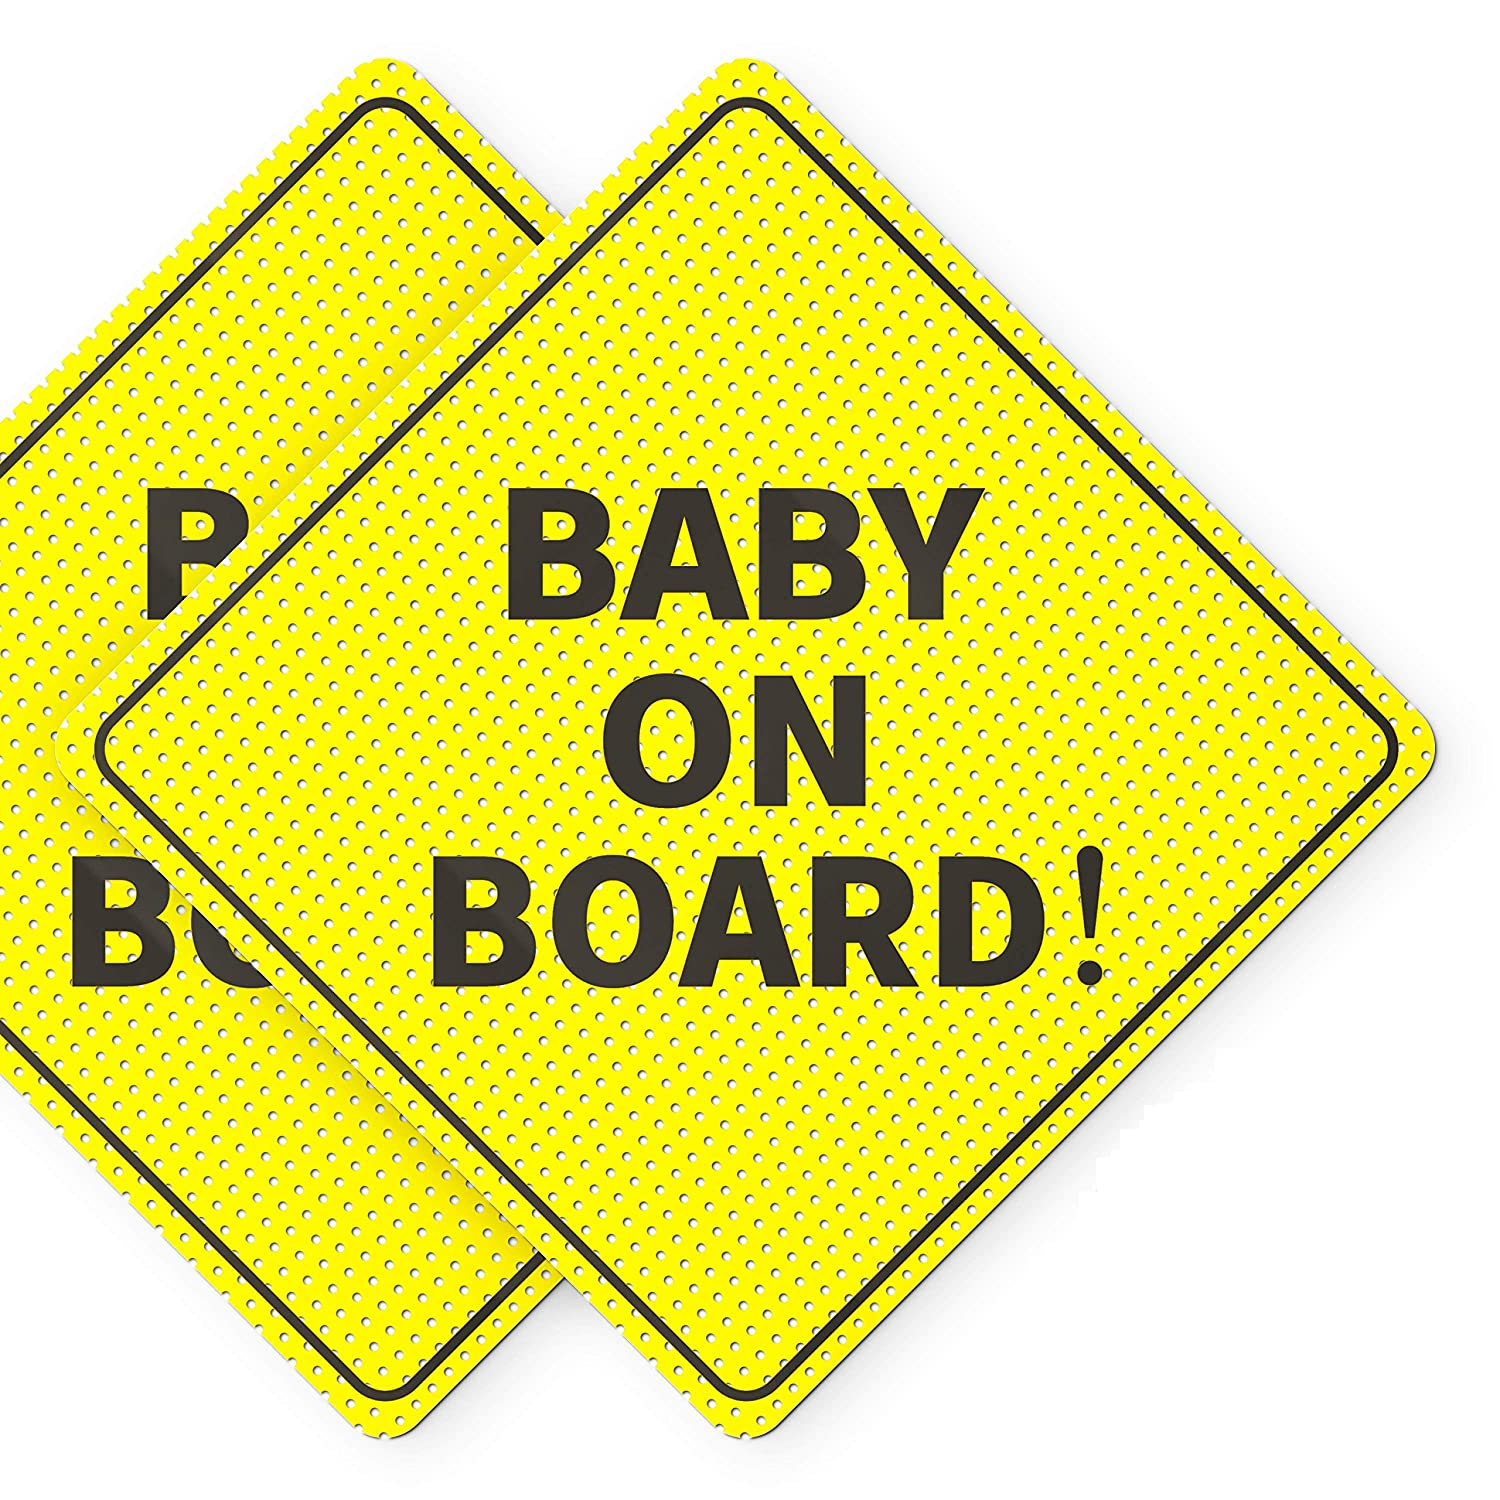 "Baby On Board Sticker Sign - Essential for Cars - 2 Pack, 5"" by 5"" - Bright Yellow and SEE-THROUGH when Reversing - Best Safety Signs - No Need for Suction Cup or Magnets - Durable and Strong Adhesive"